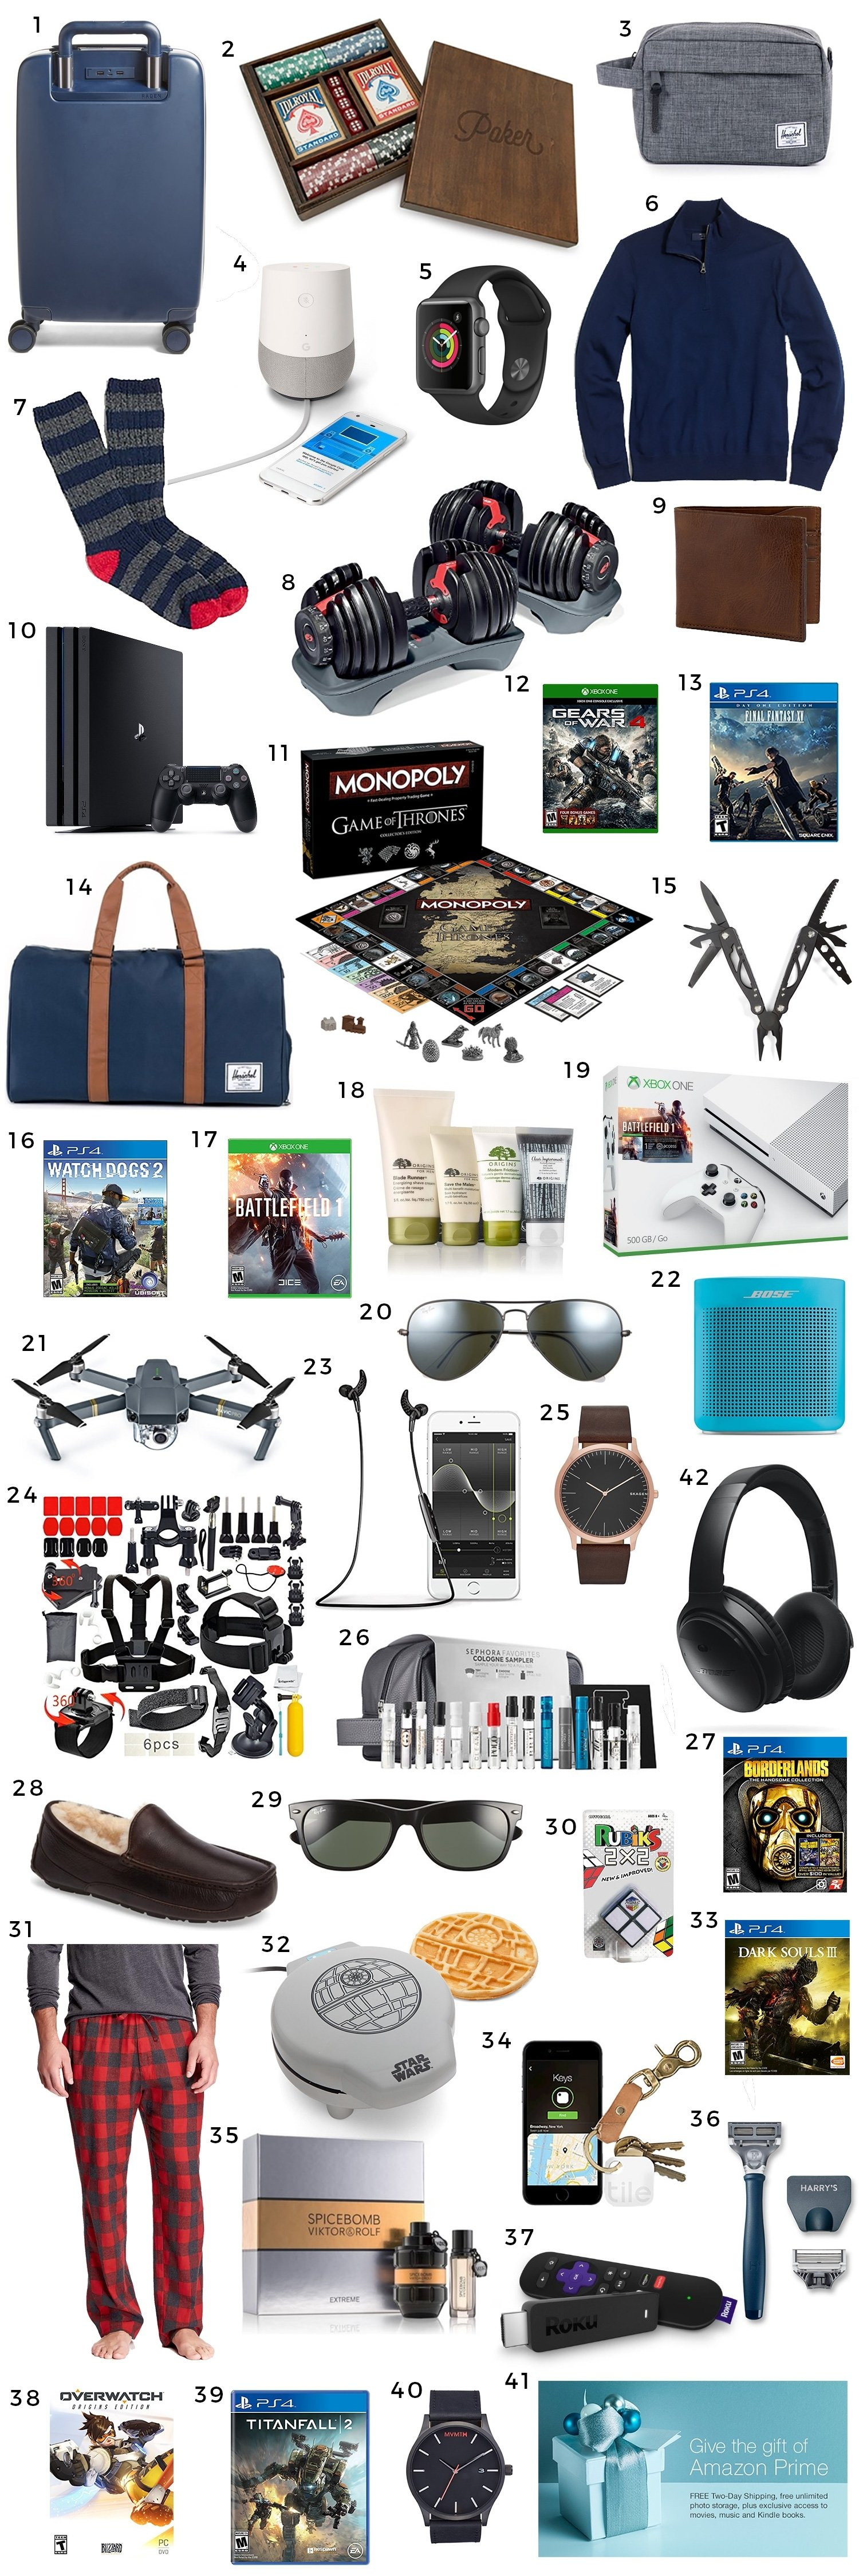 10 Pretty Christmas Gifts Ideas For Men the best christmas gift ideas for men ashley brooke nicholas 11 2020